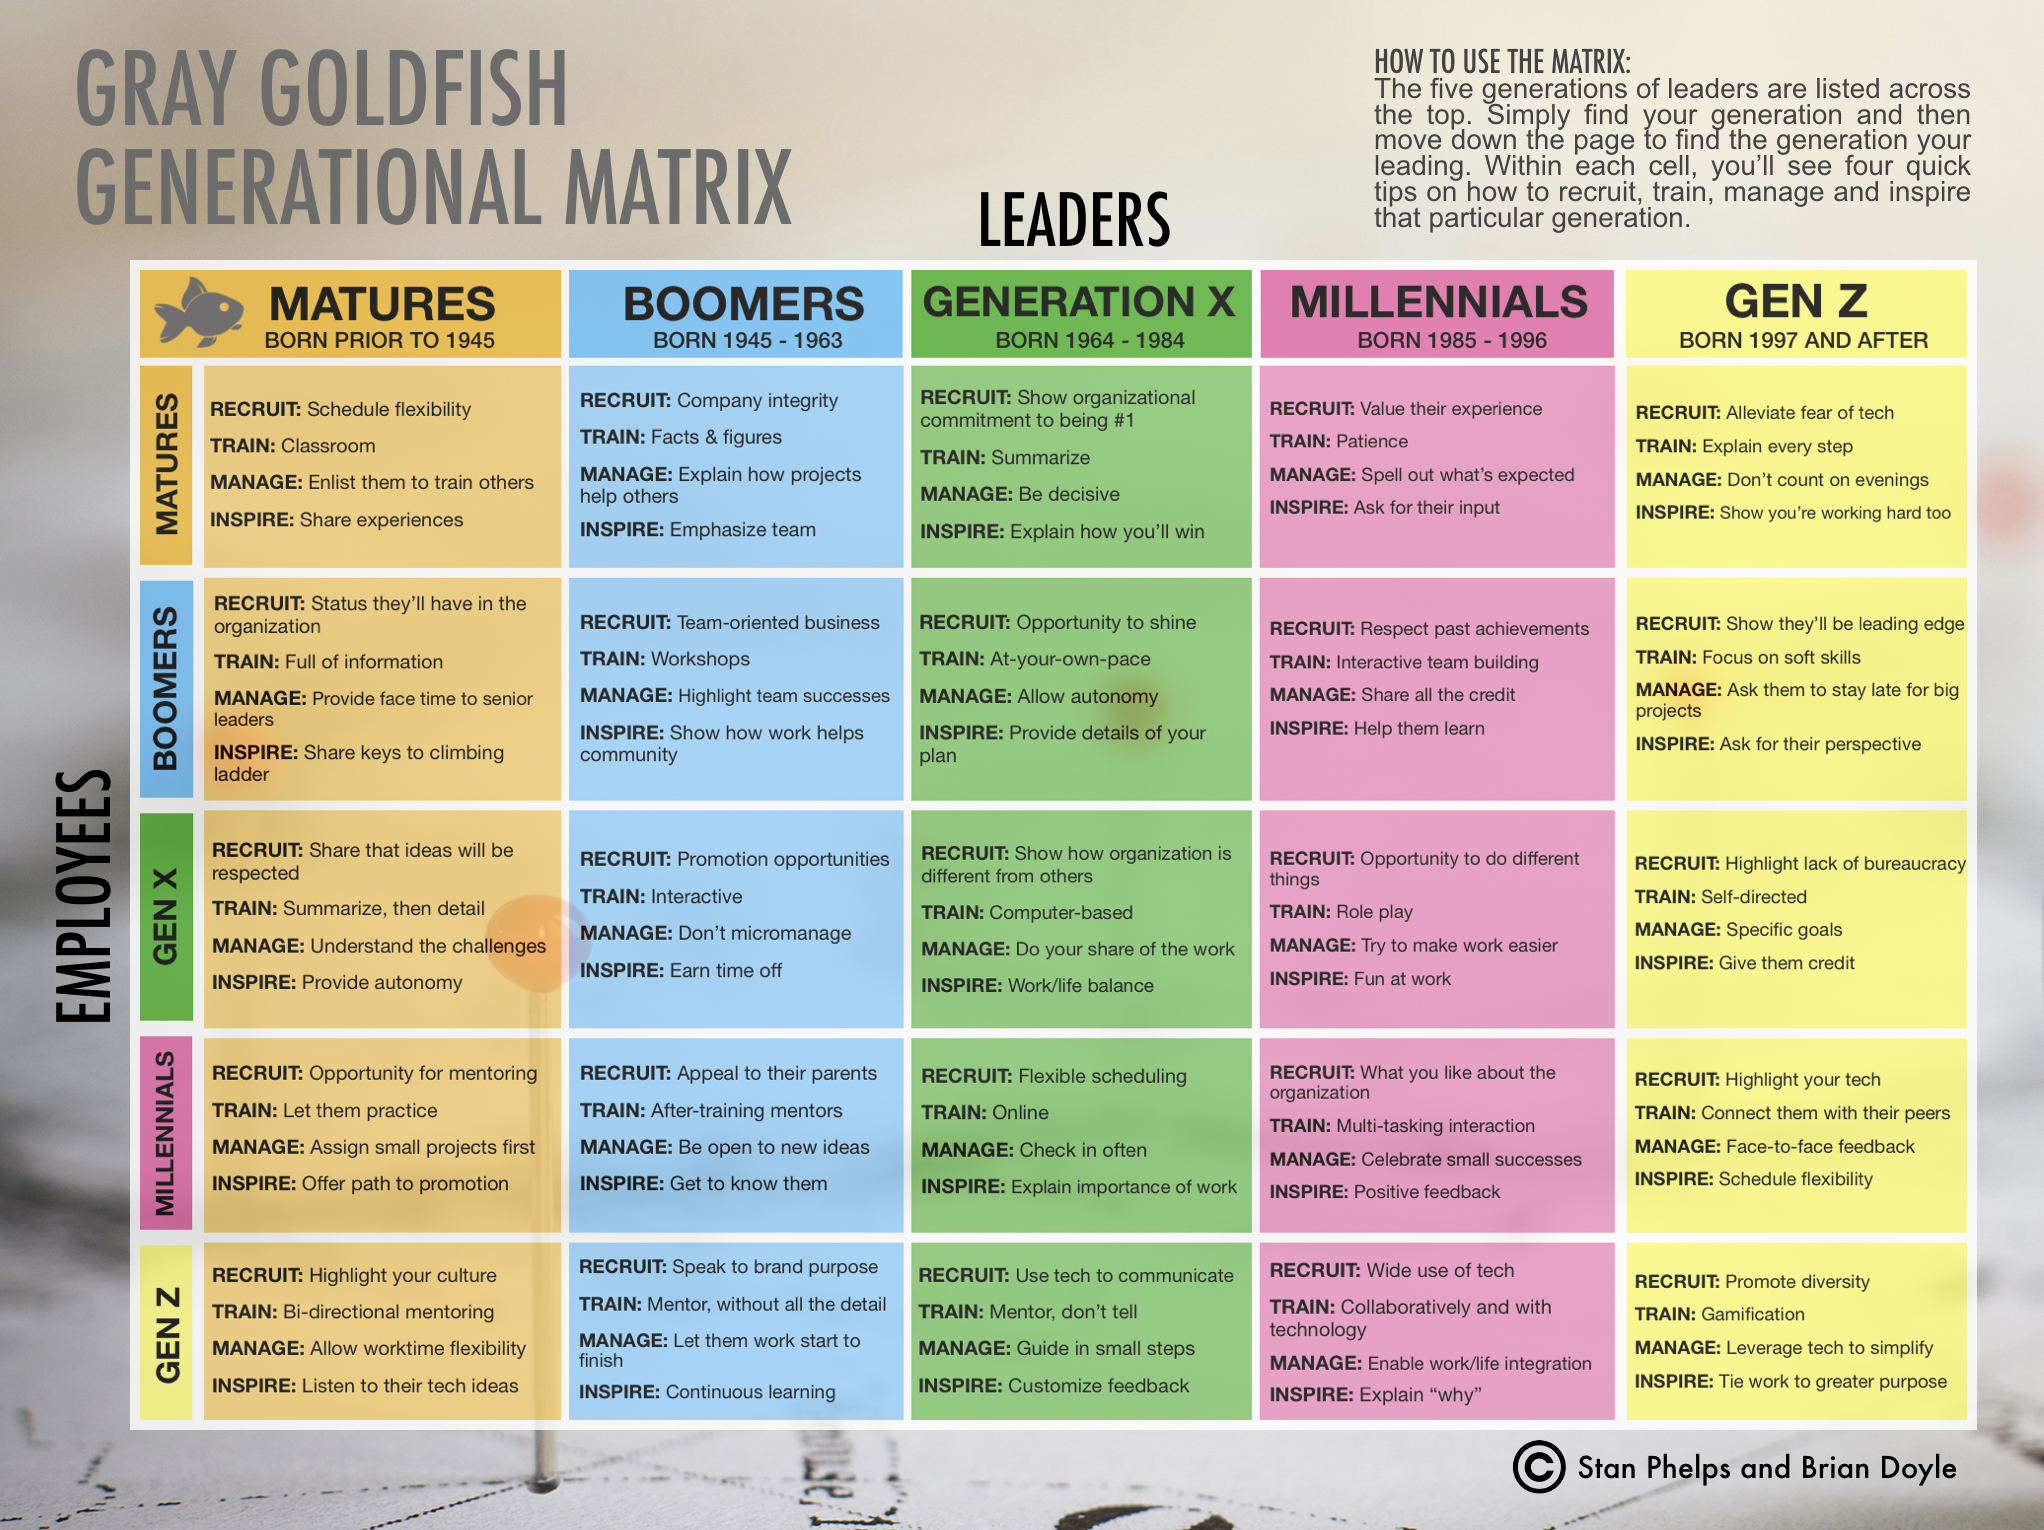 The Generational Matrix